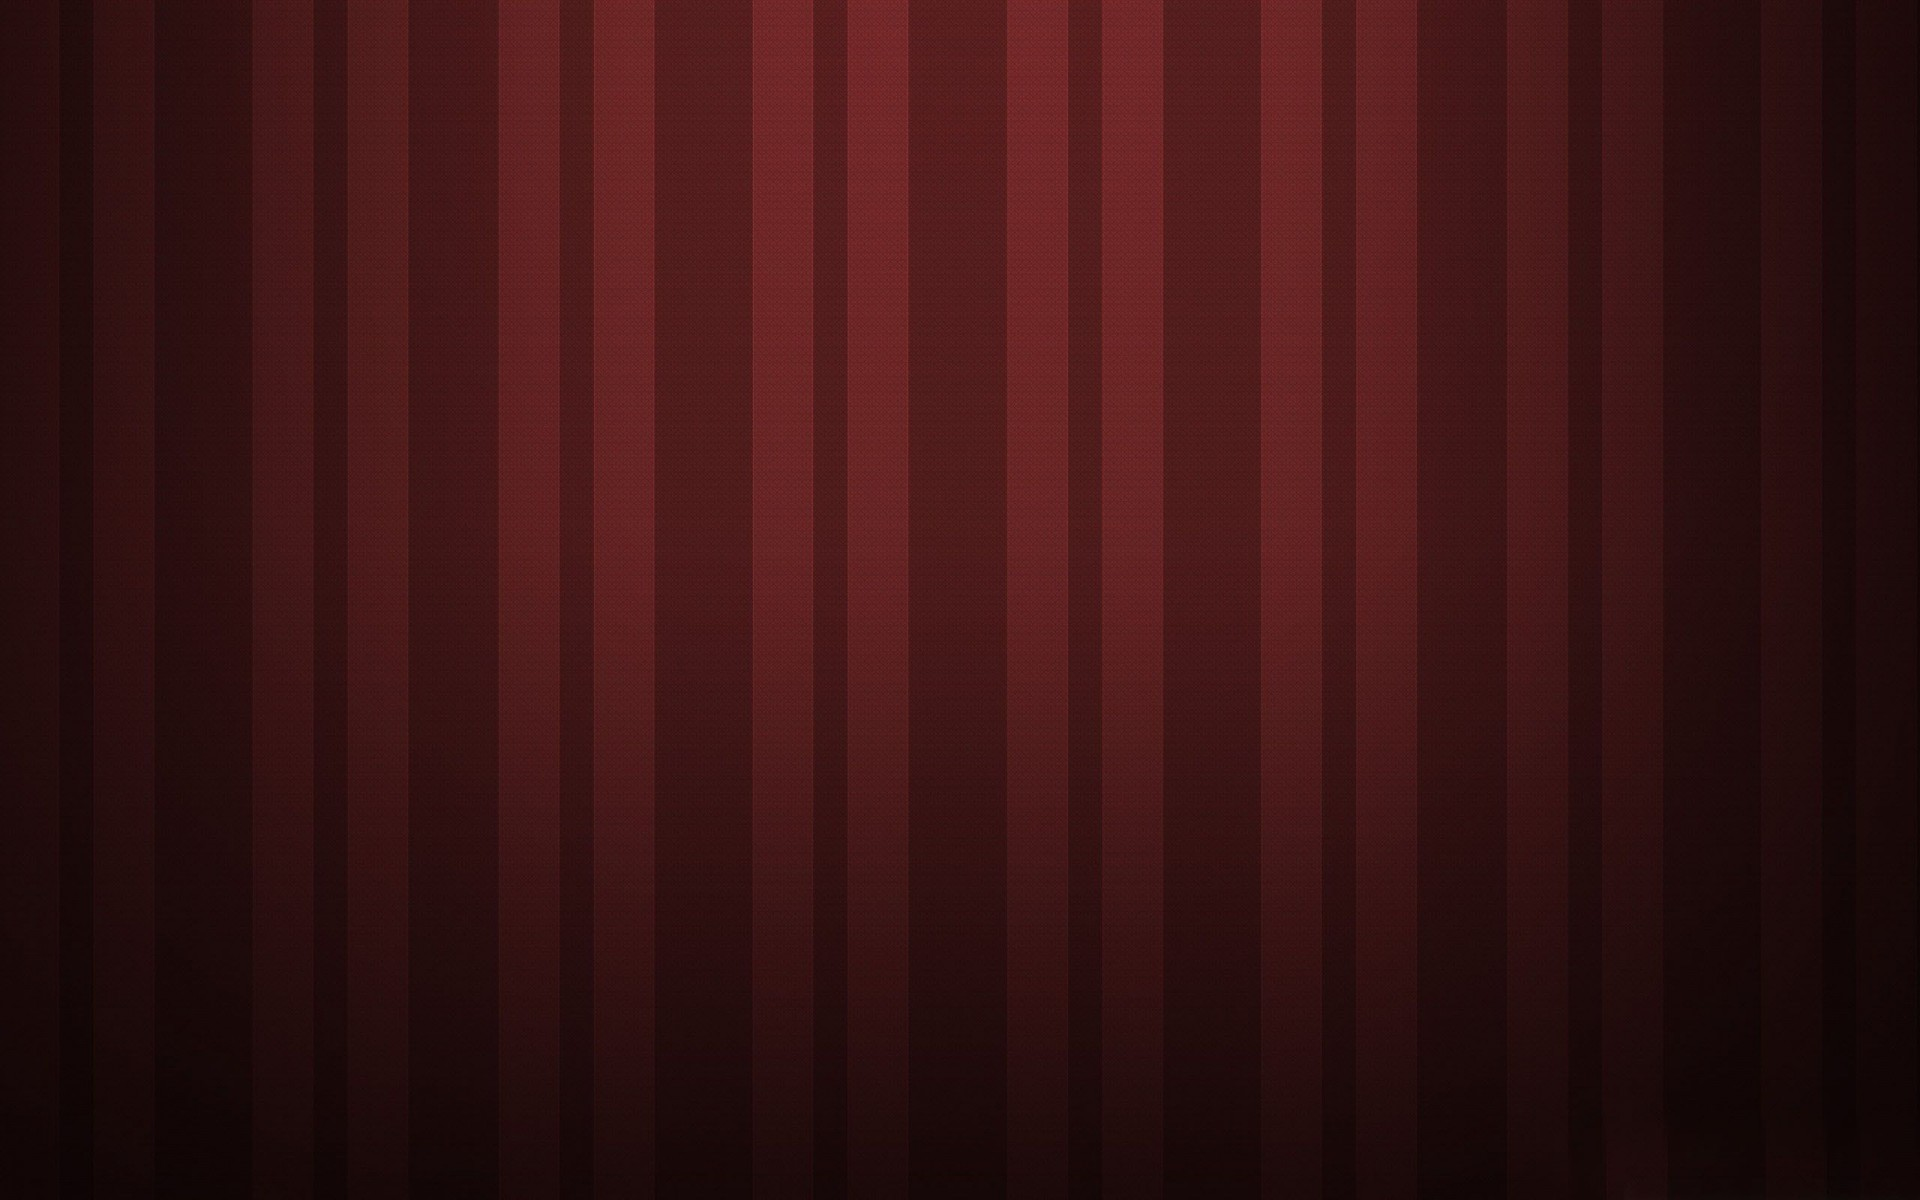 Design A Wallpaper For Iphone 30 Hd Red Wallpapers